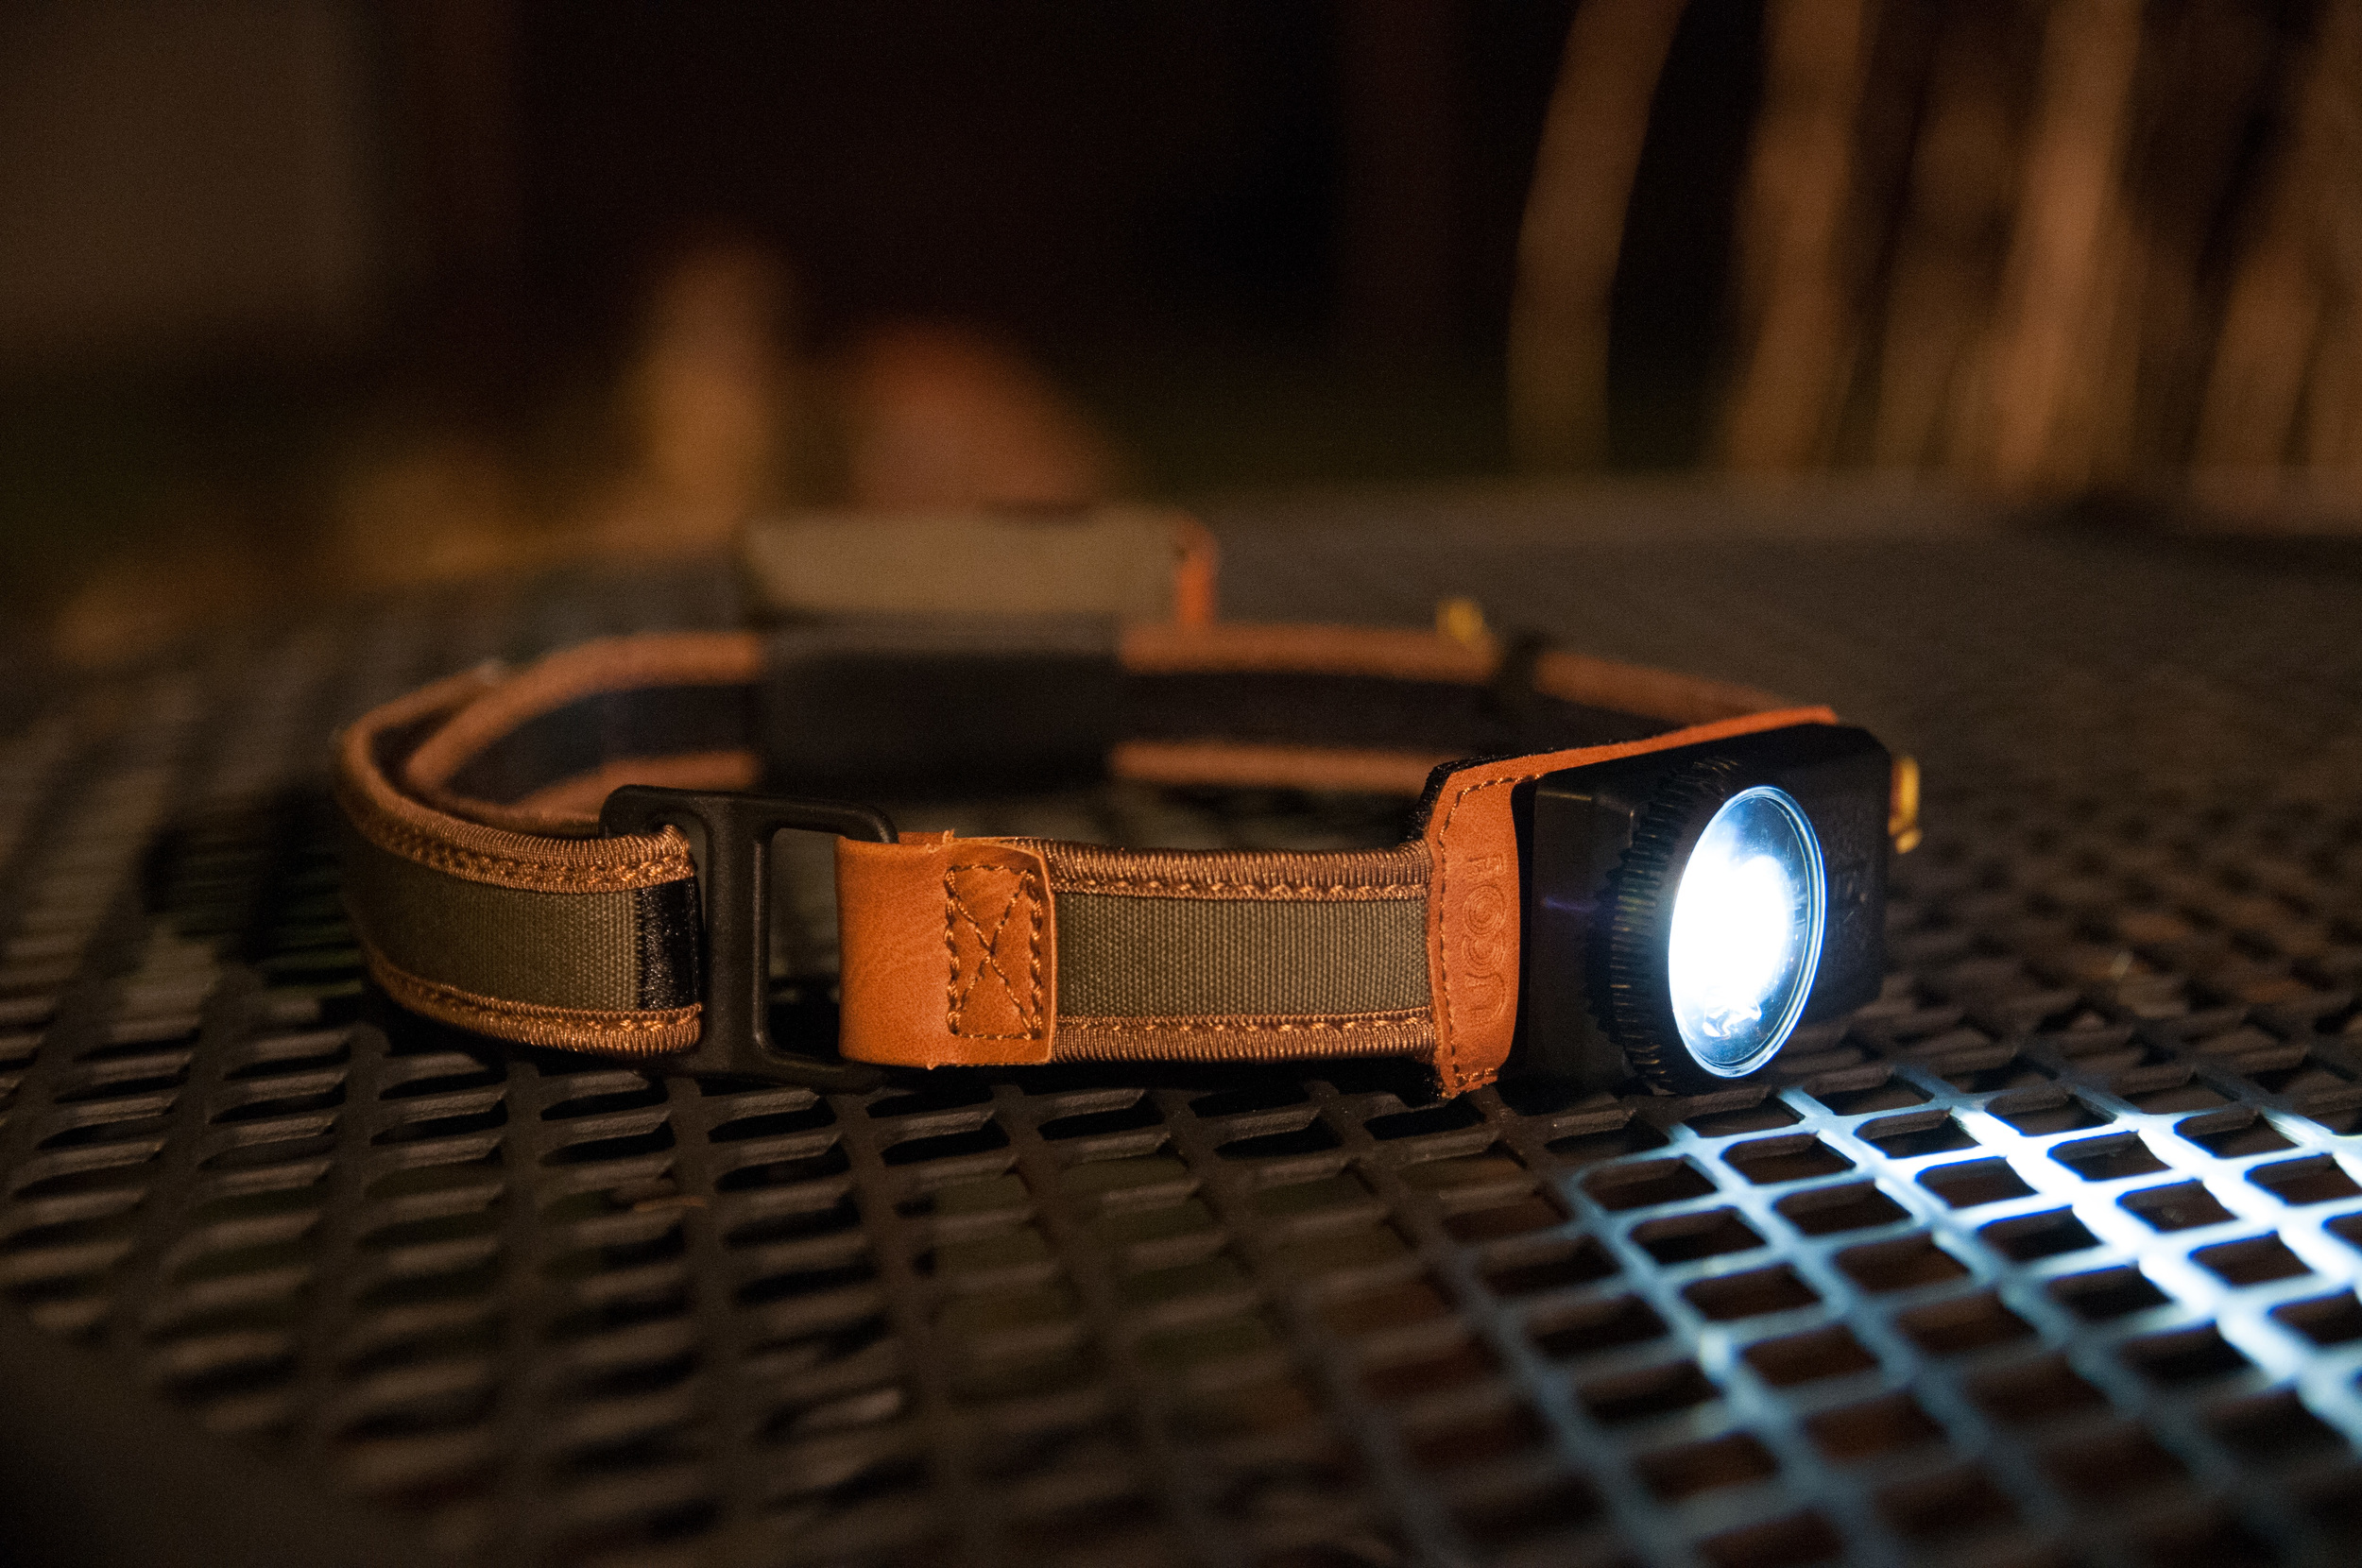 UCO A-120 Comfort-Fit Headlamp Review